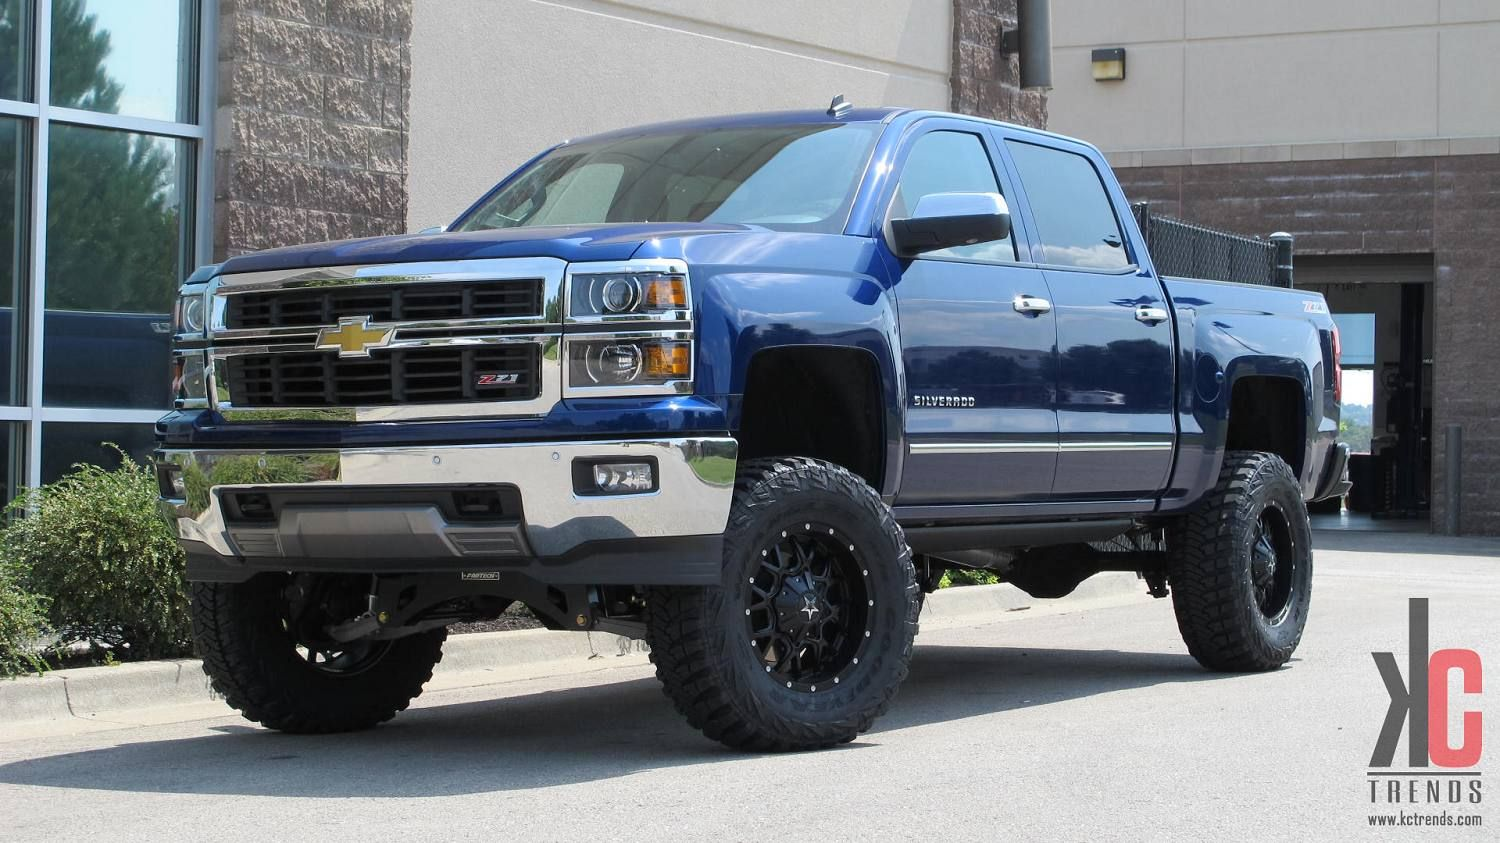 Truck black chevy truck lifted : one day i will get a chevy silverado truck with a lift kit on it ...